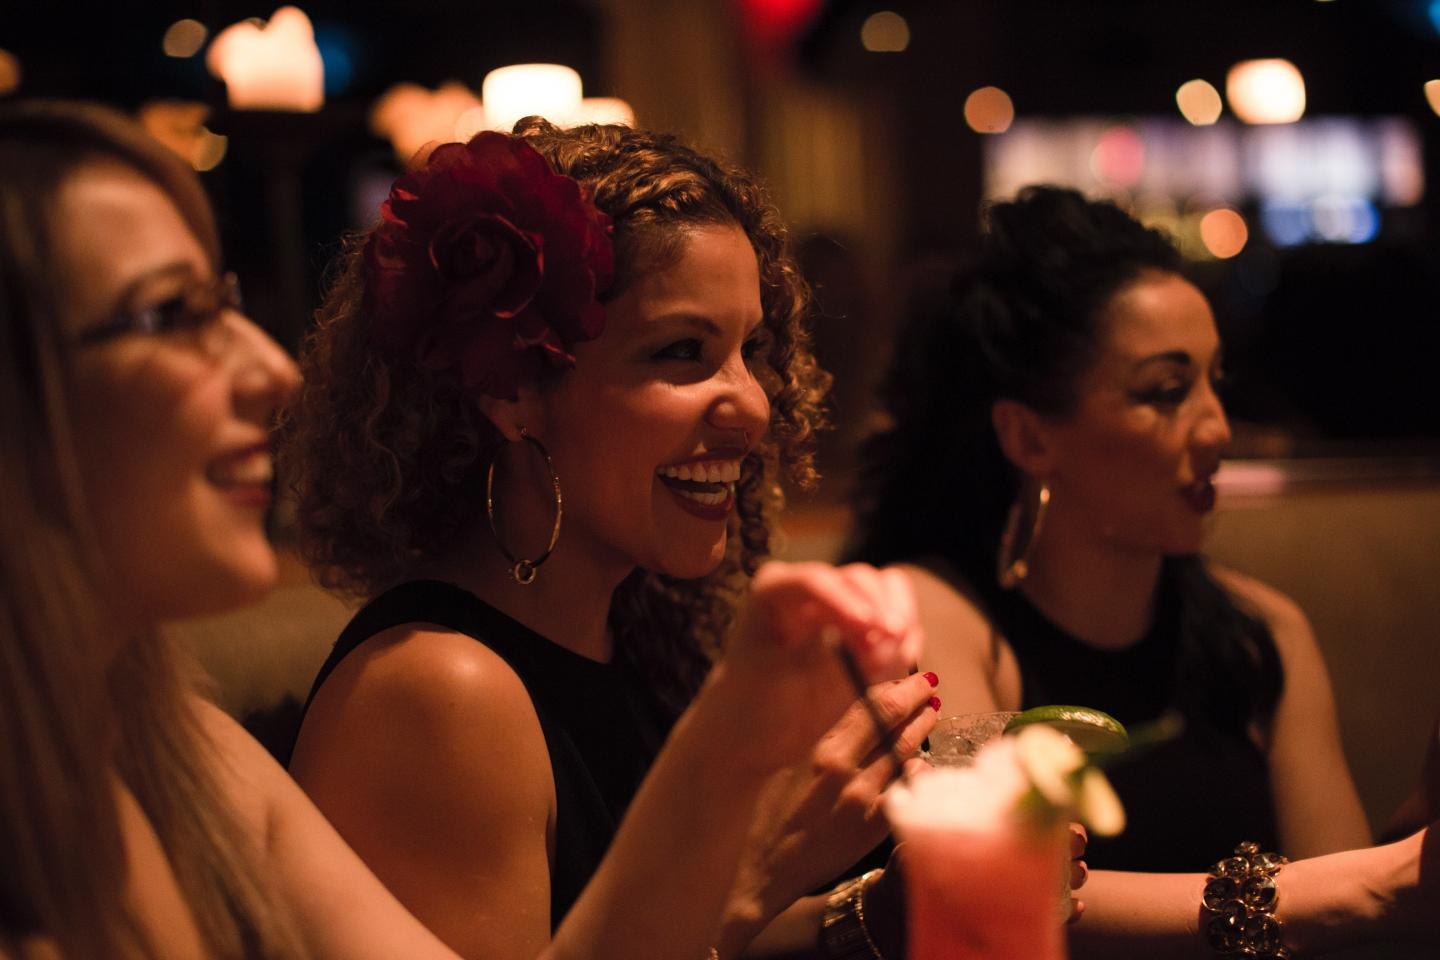 Girl with curly hair laughing with cocktail at Nacional 27